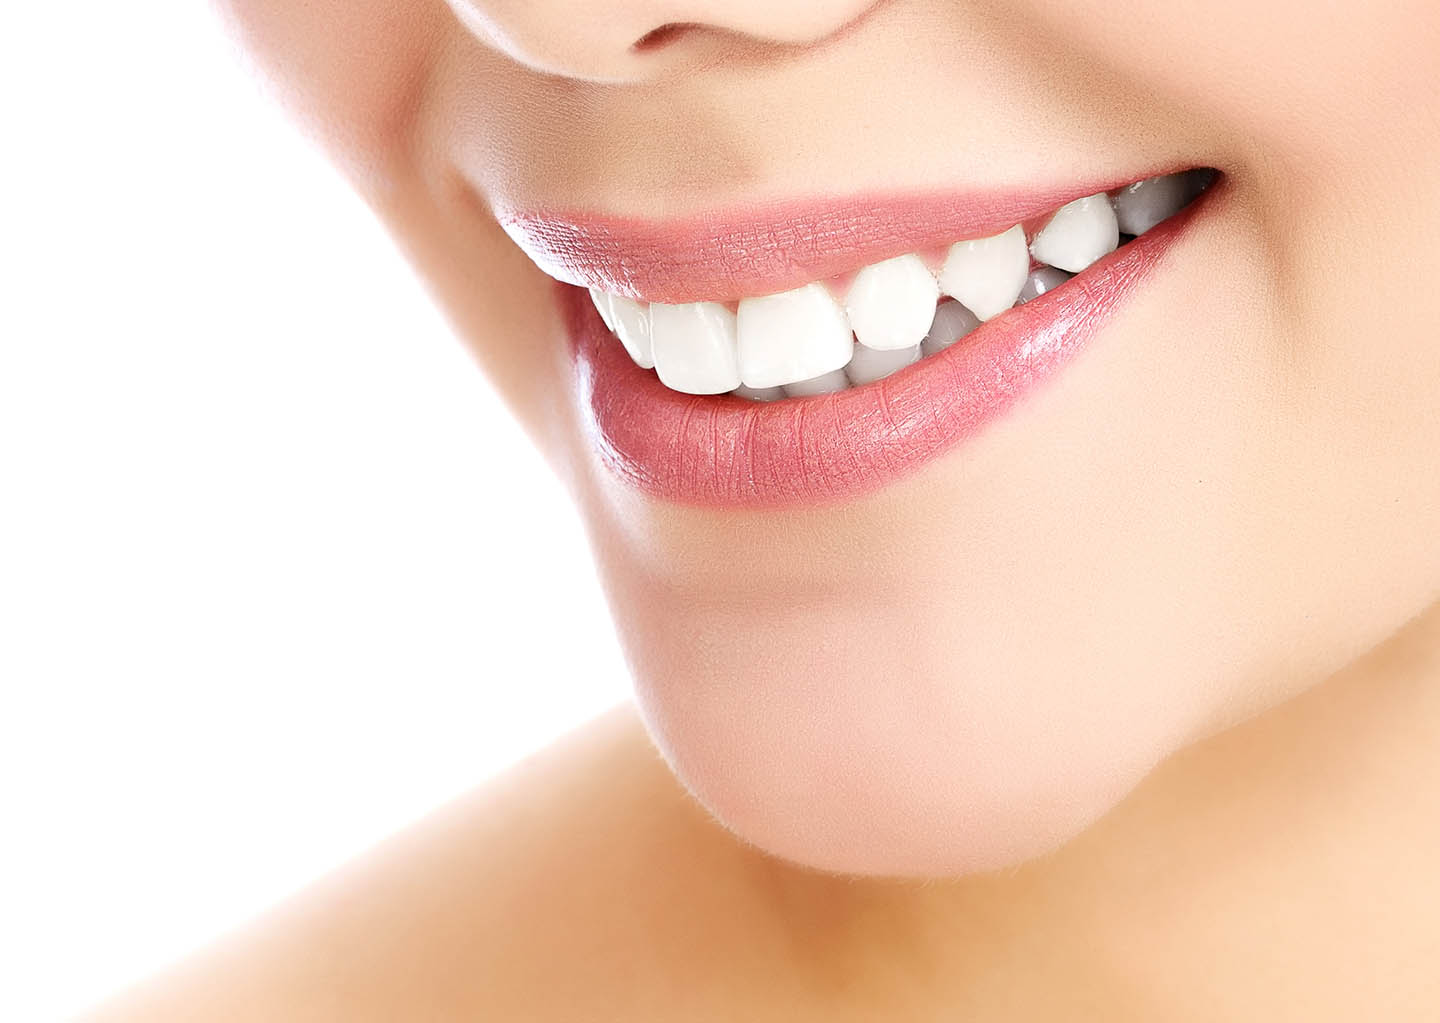 Porcelain Veneers at Olentangy Modern Dental